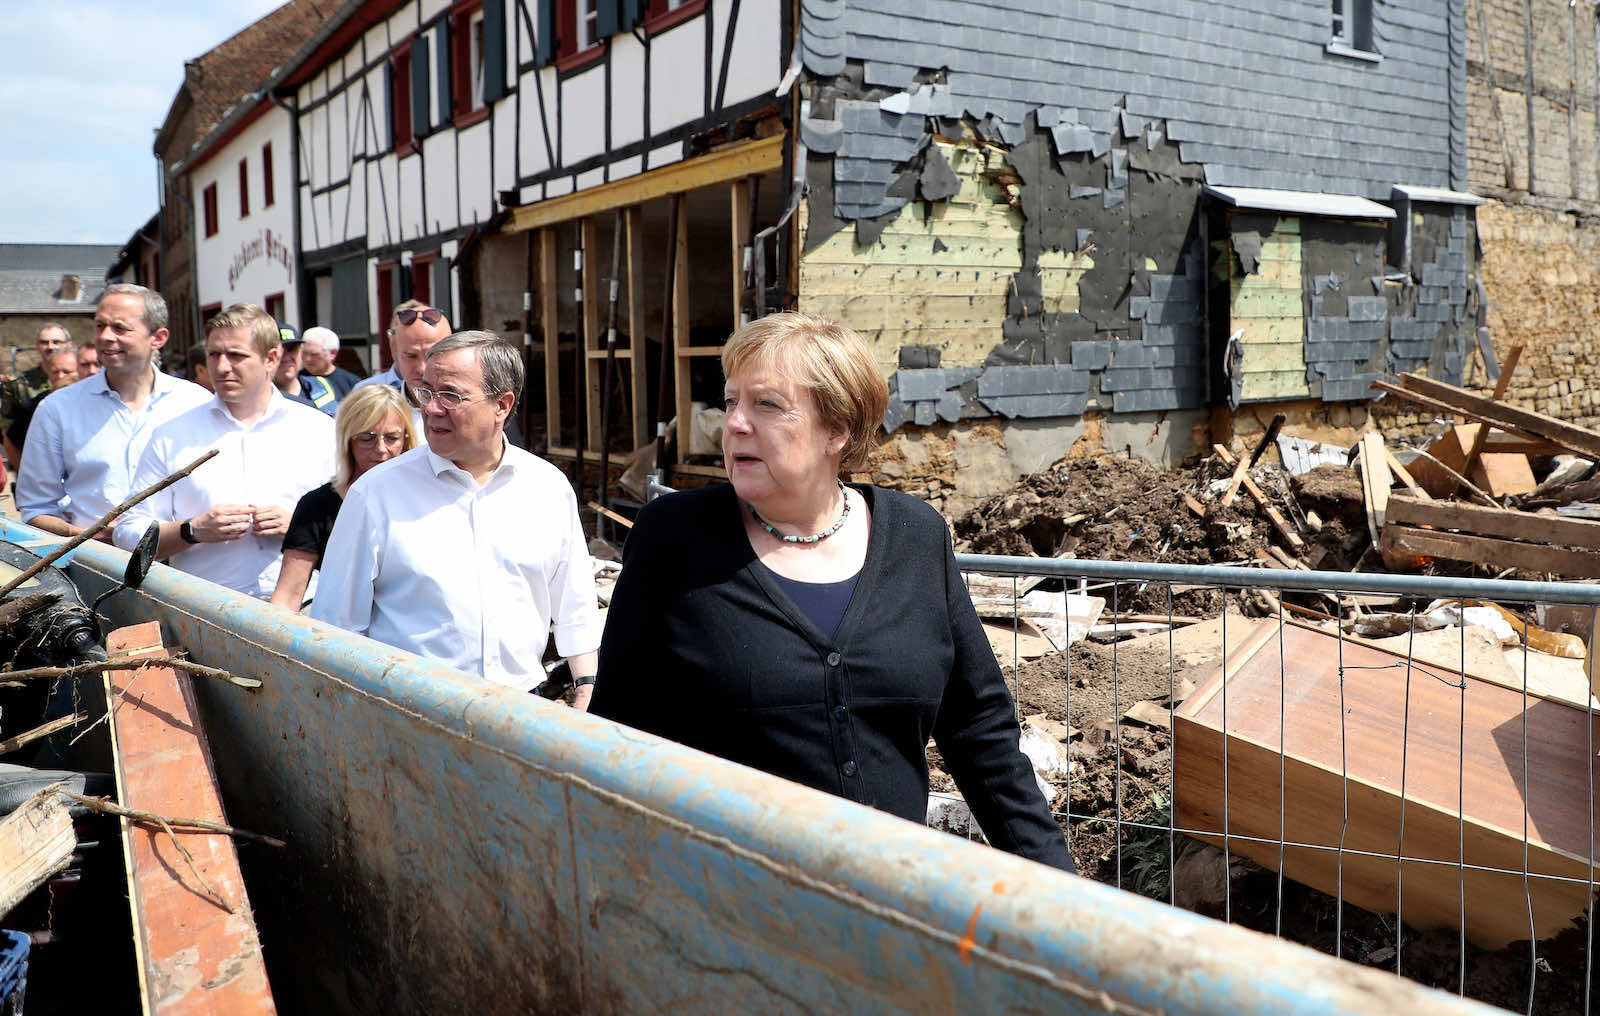 German Chancellor Angela Merkel inspecting damage after heavy flooding in the village of Bad Muenstereifel on 20 July. Merkel was accompanied by Armin Laschet, seen as a favourite to take over the chancellor position (Friedemann Vogel via Getty Images)